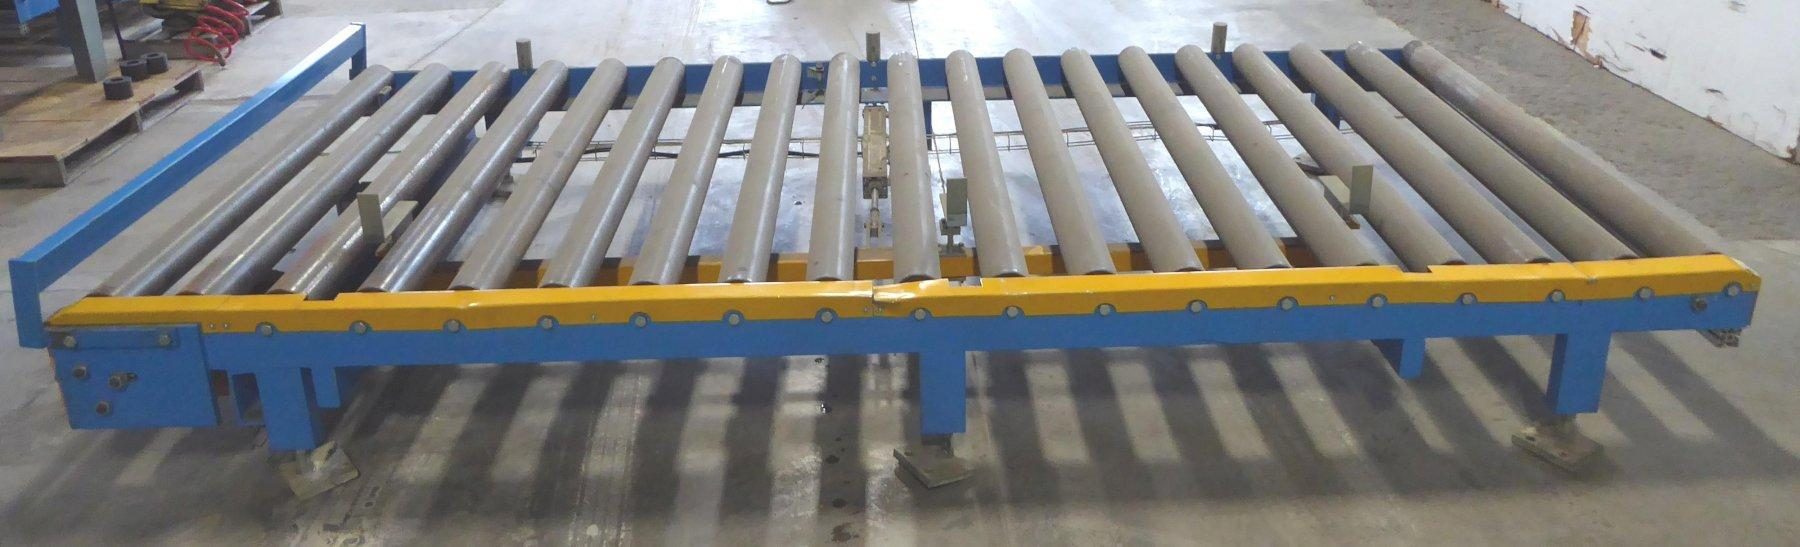 "Biele Power Roller Conveyor, 67"" Wide, 147"" Overall Length,  (19) 4-1/4"" Diameter Rolls On 8"" Centers, Approximately 18"" High-Adjustable Legs, 2011"